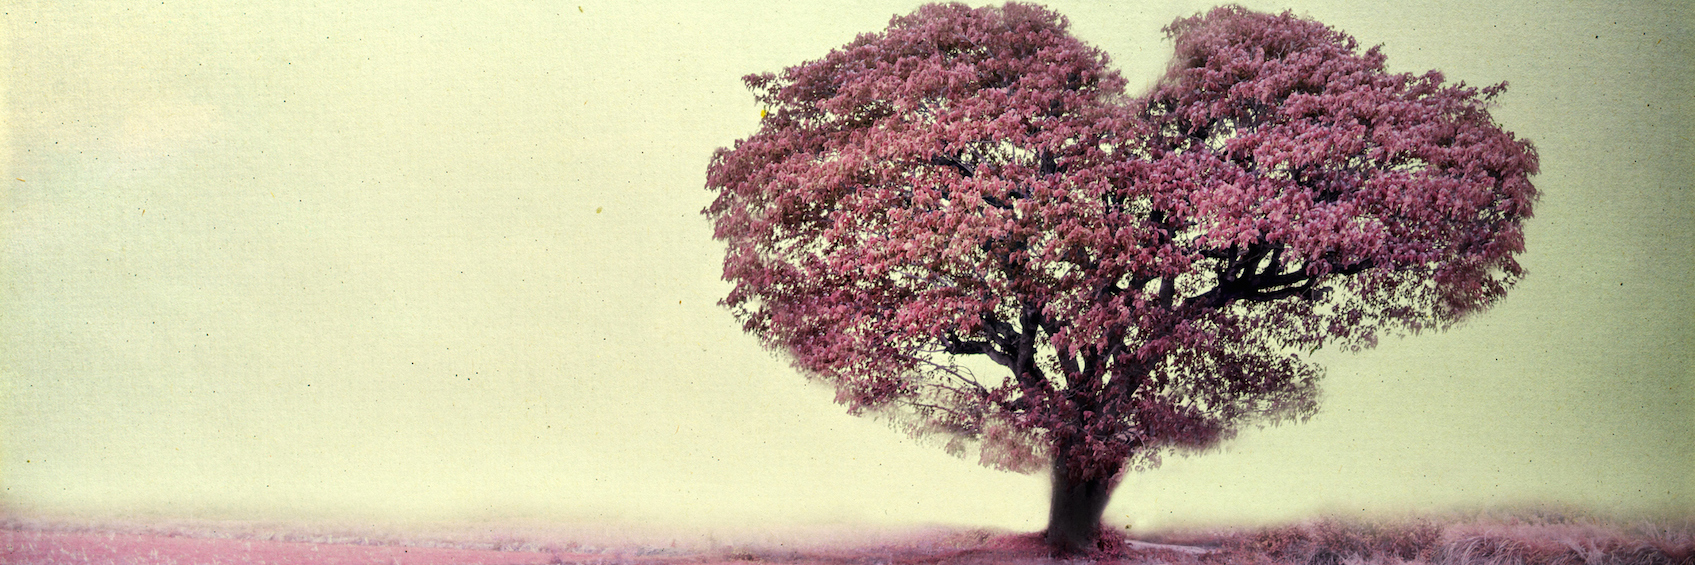 Illustration of pink heart-shaped tree against gray sky background